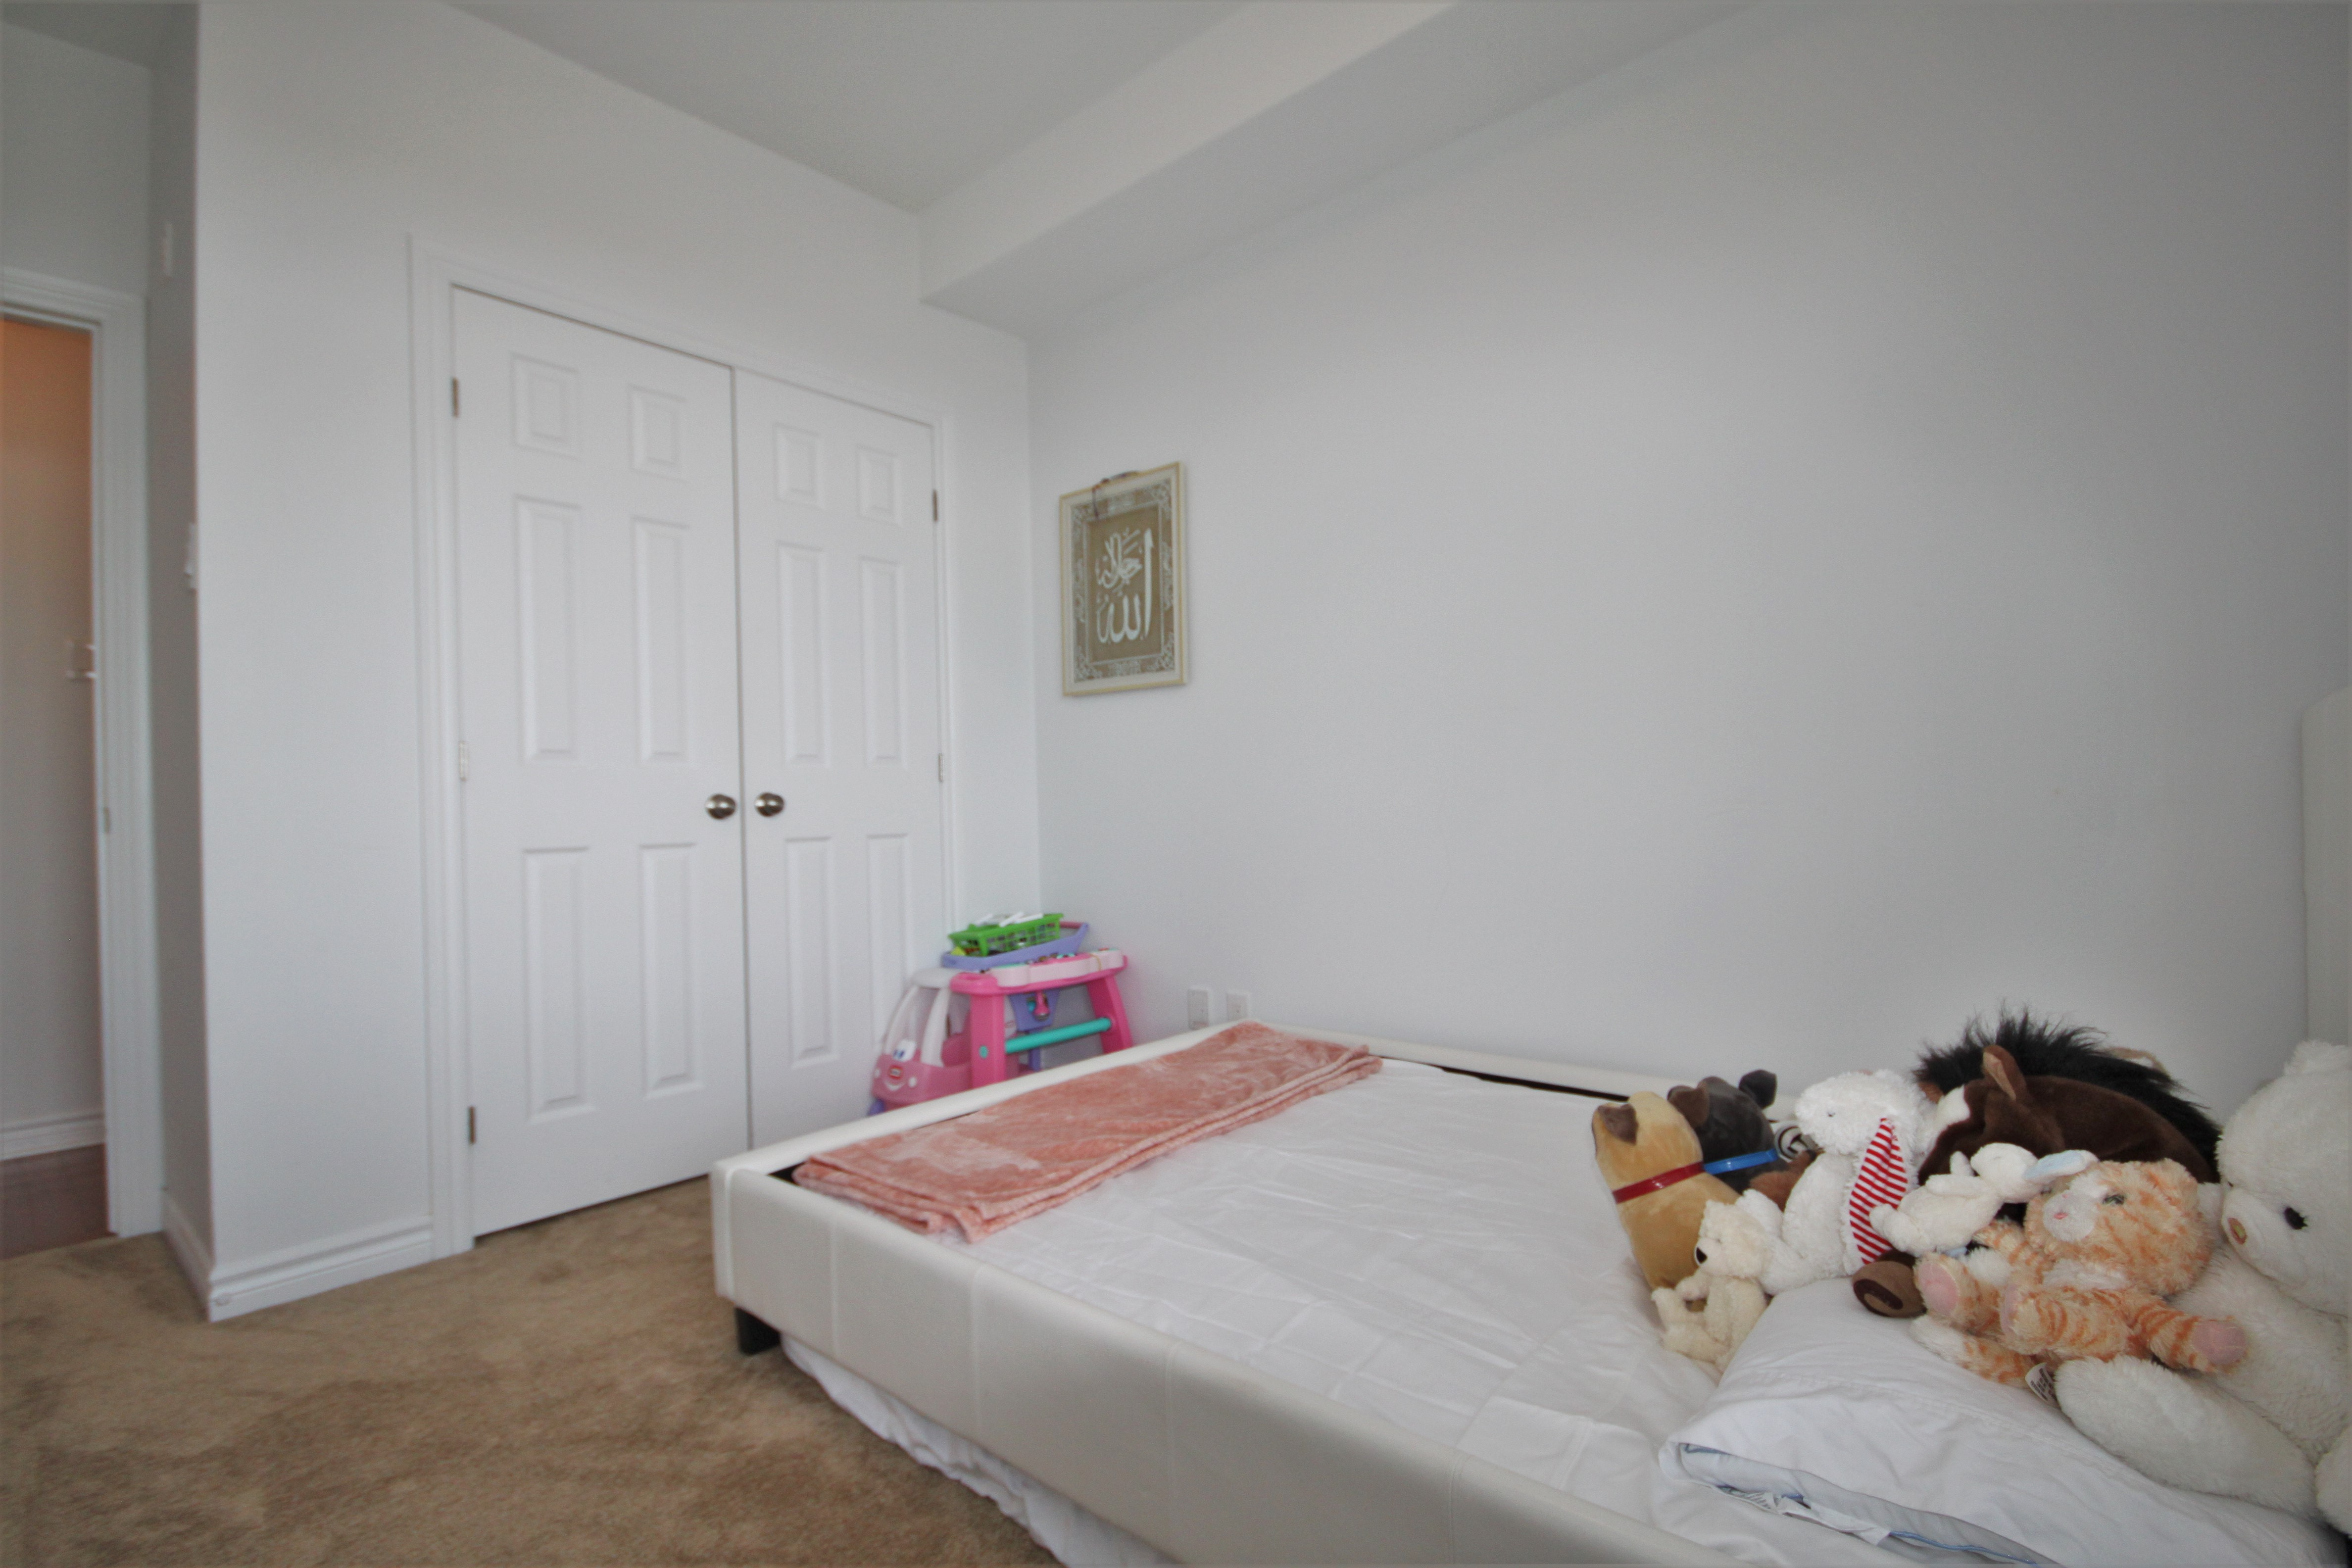 Spacious second bedroom with large closet and plush carpeting.